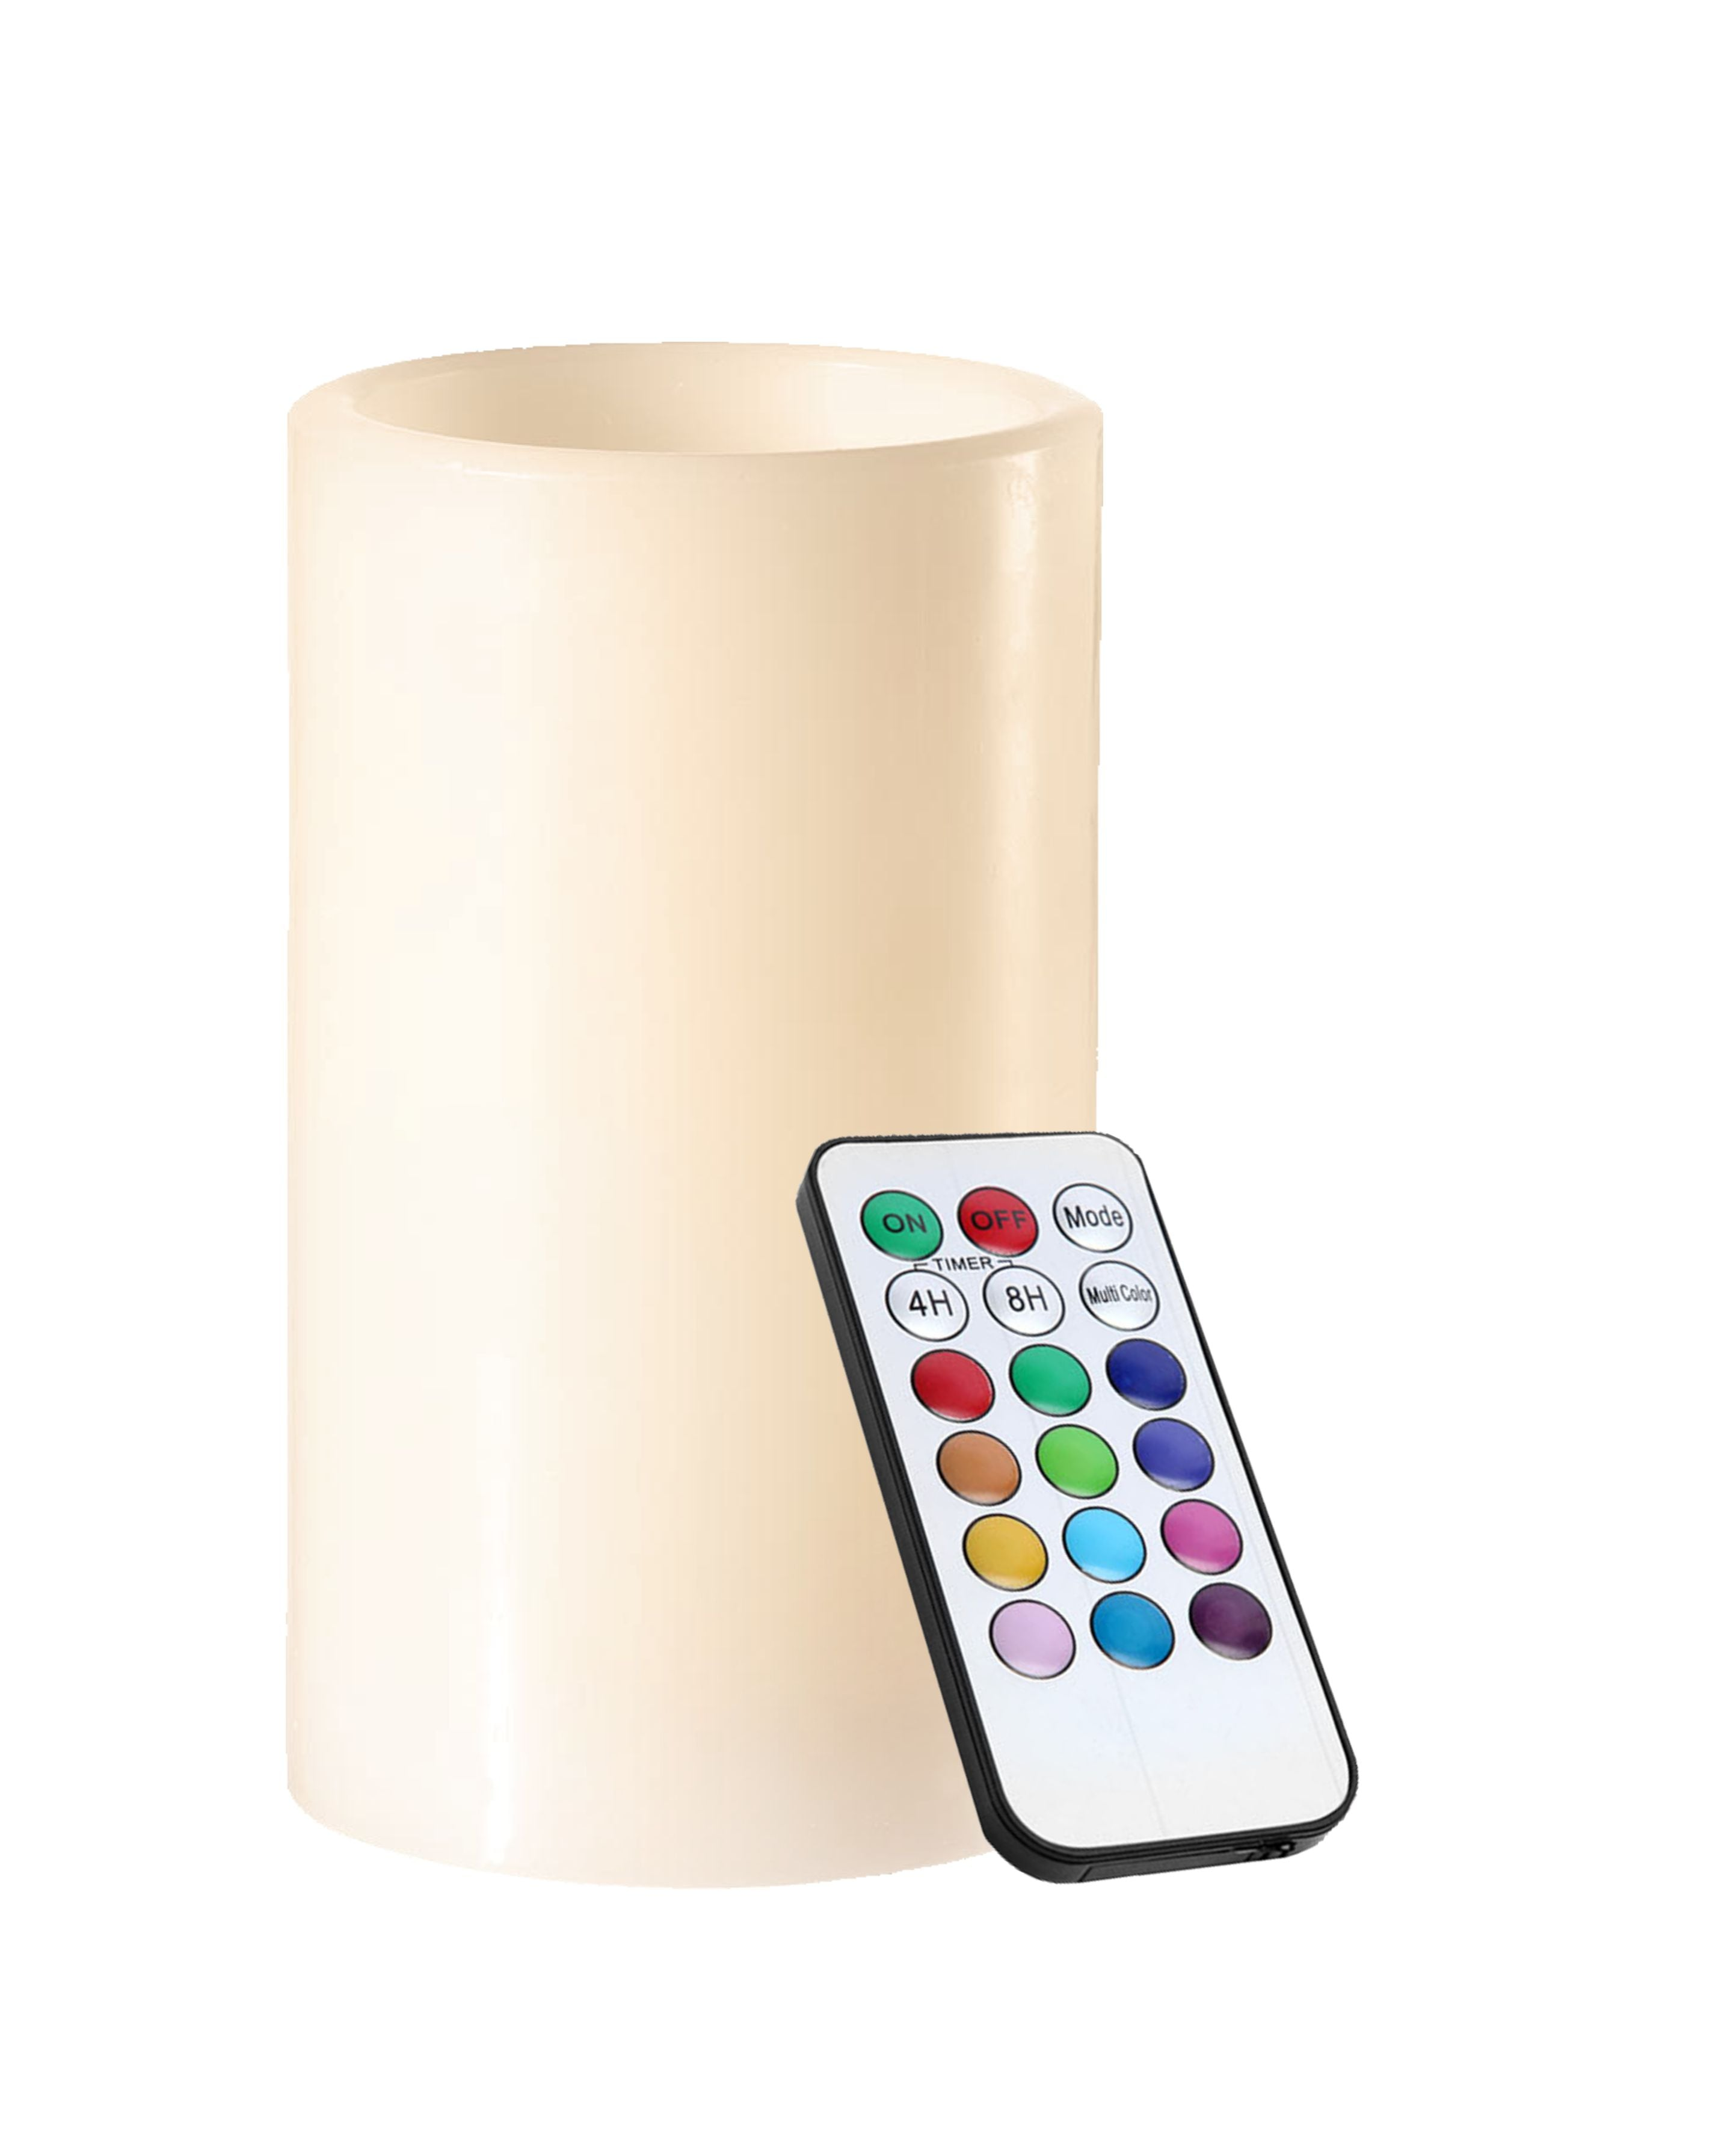 Wax RGB LED candle with remote control